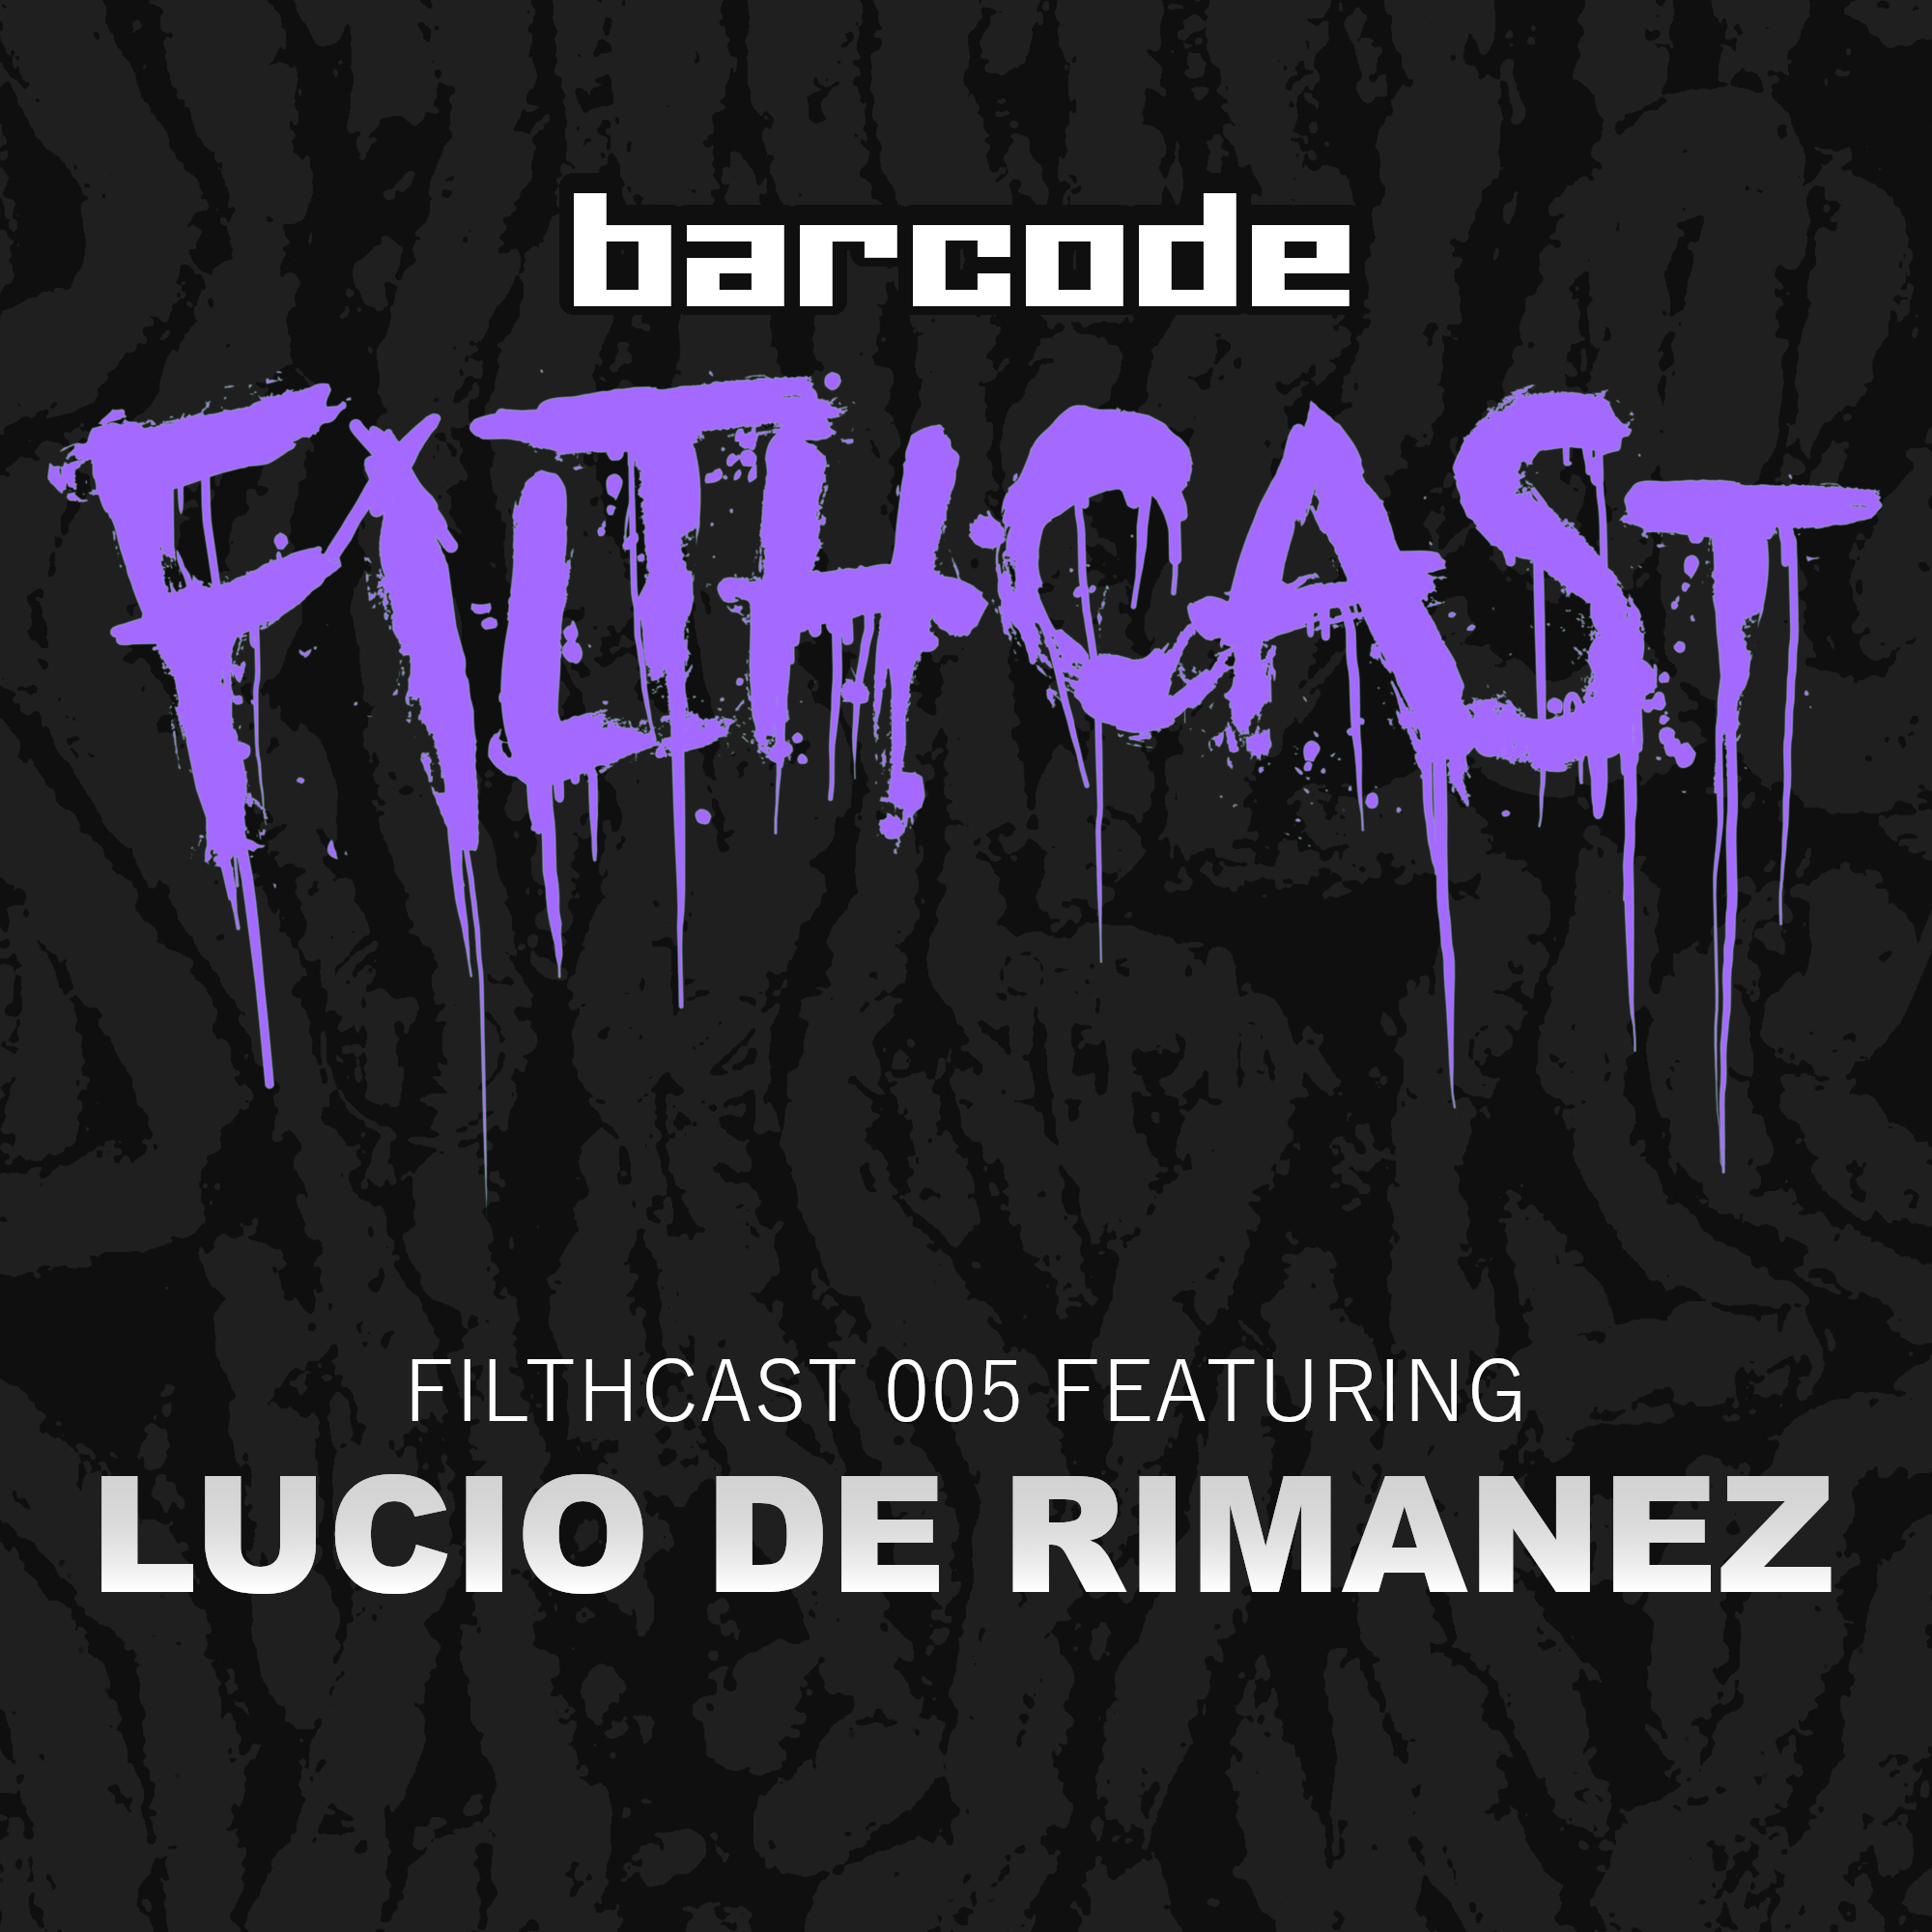 This Special Edition Filthcast is brought to you by an artist we consider to have an amazing talent, refreshing ideas and a great inspiration for us going forward into 2009 Born and raised near Moscow, Russia - 20 year old Lucio De Rimanez has wowed us (a couple of times now) with his production and experiemental take on drum n bass Expect deep atmospheres, brutal drums, bleeps and bangers.